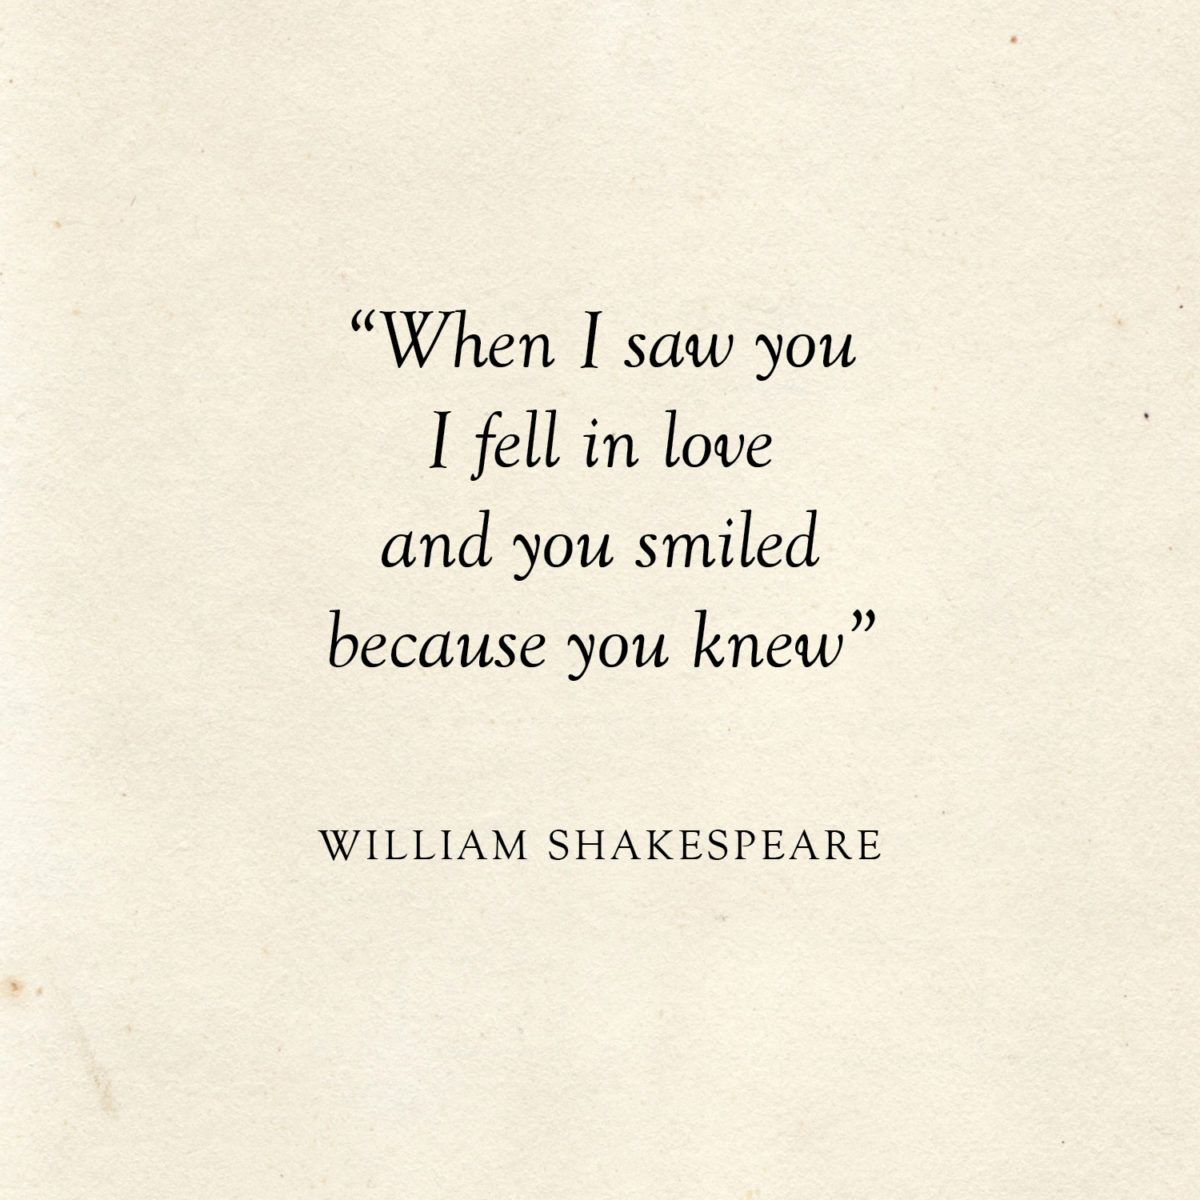 Cute Love Quotes smile Love is one the most important and powerful thing in this world that keeps us together, lets cherish love and friendship with these famous love quotes and sayings